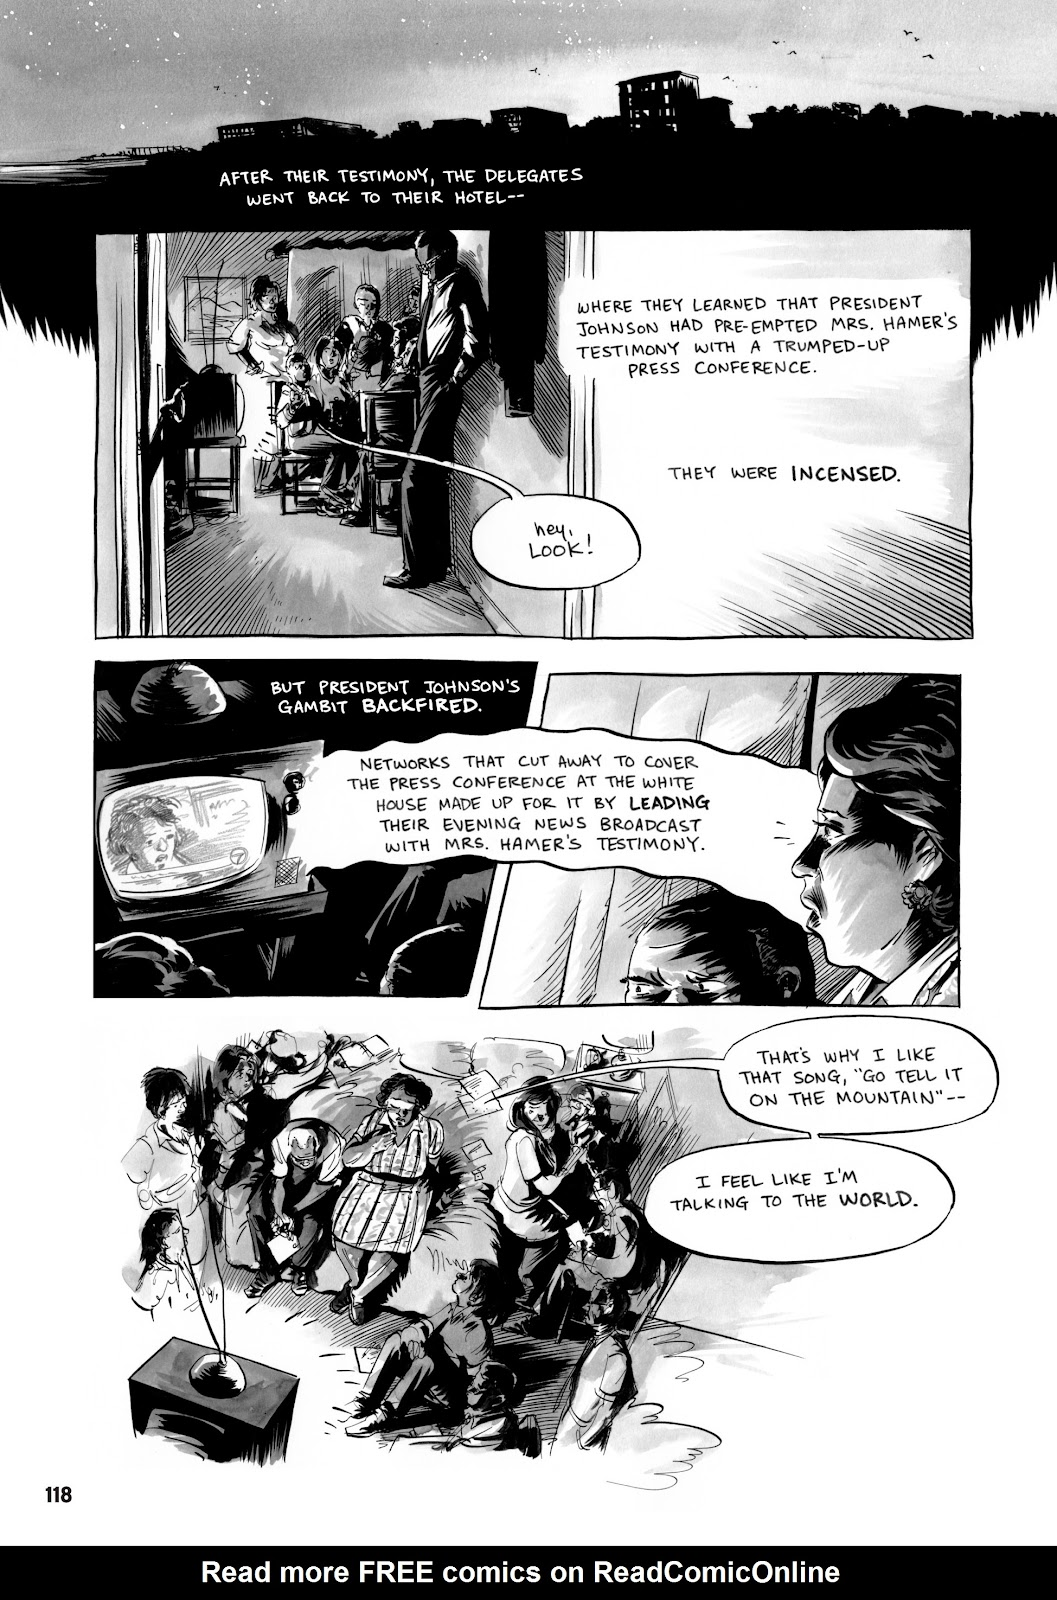 March 3 Page 114